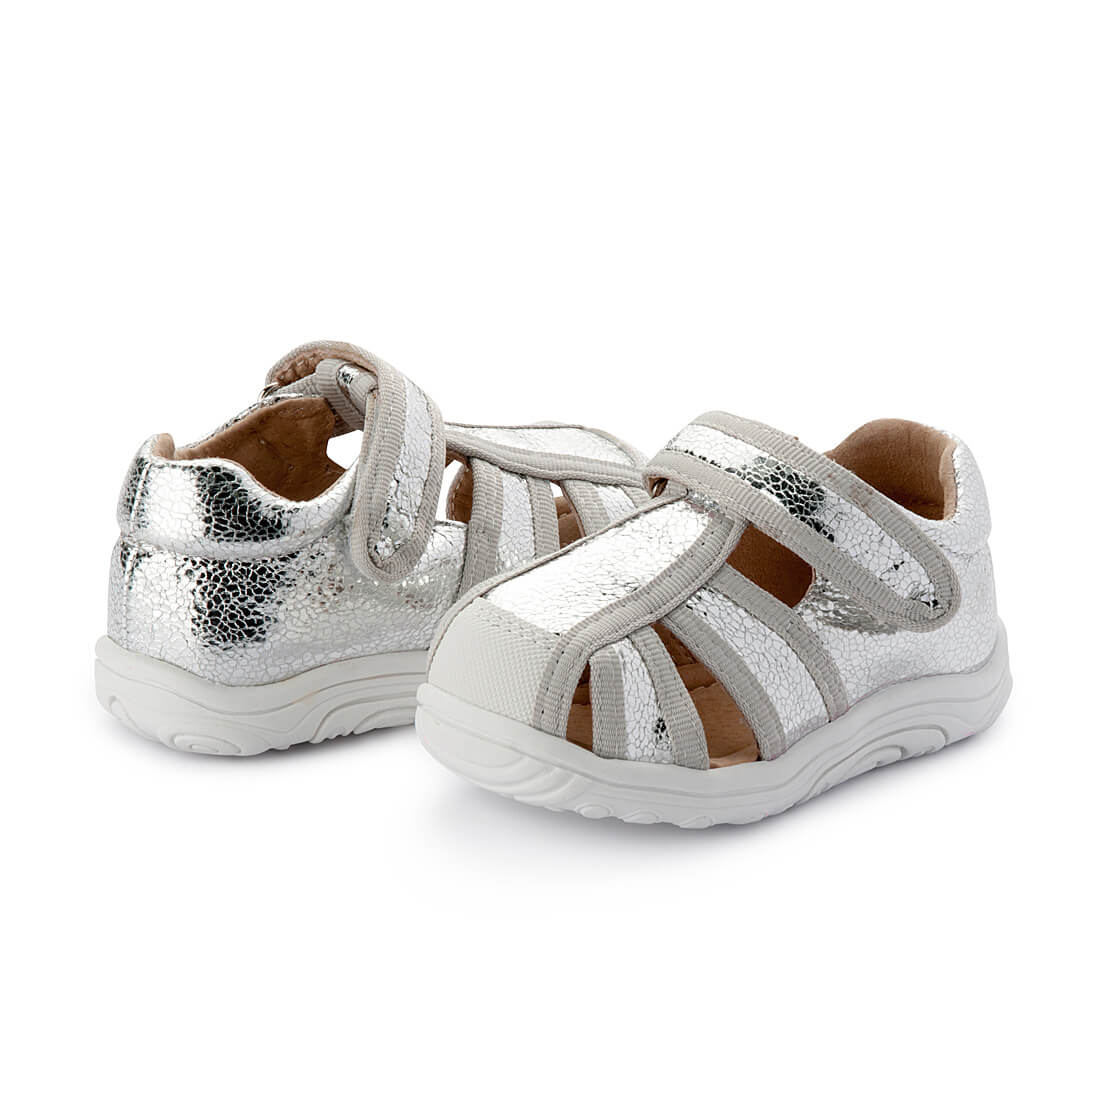 Walnut Bedford Sandal - Silver angle